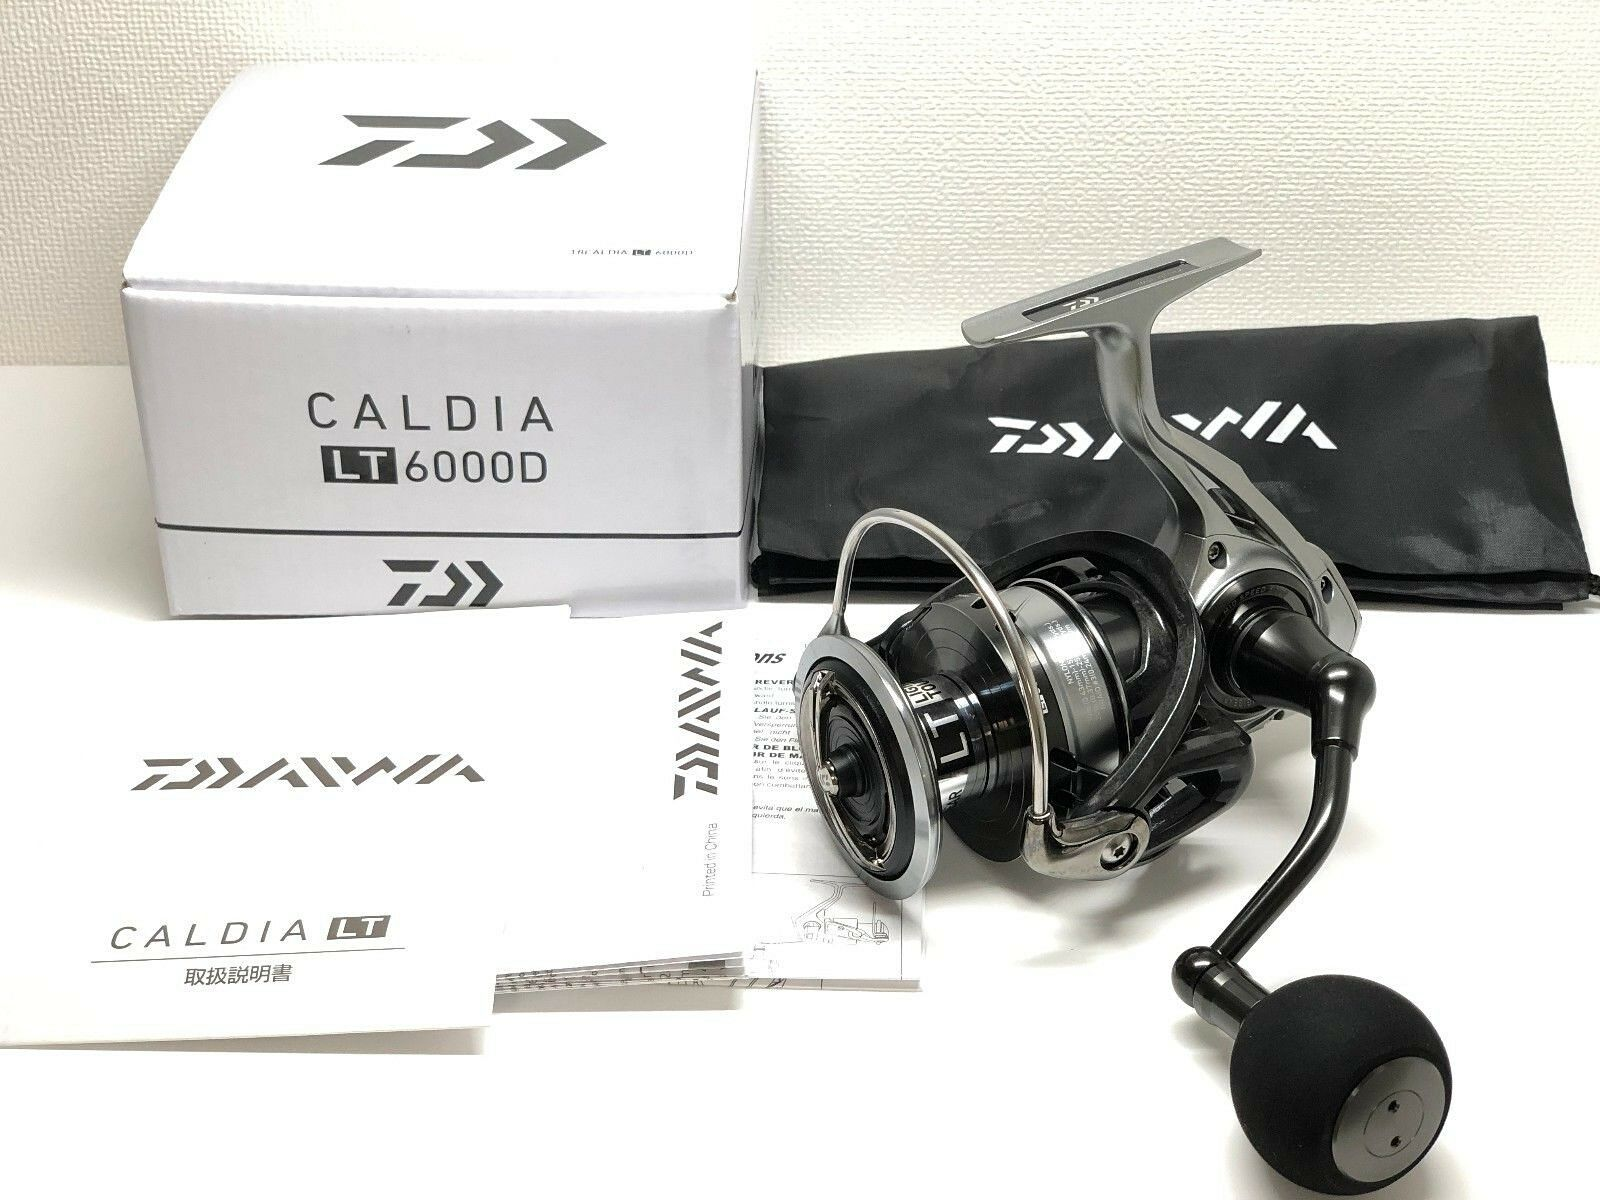 DAIWA 18 CALDIA LT 6000D  - Free Shipping from Japan